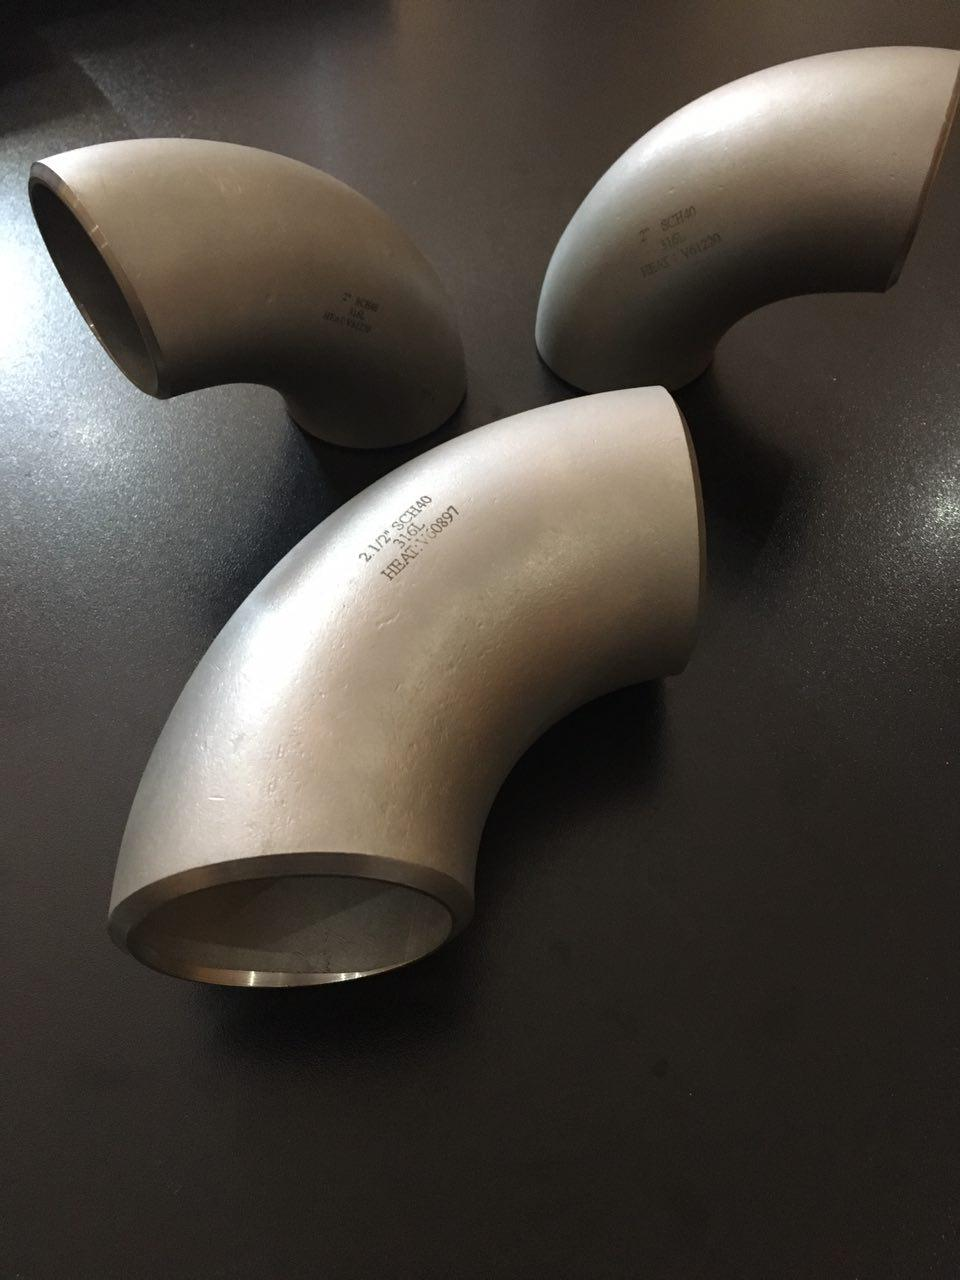 Elbow stainless steel